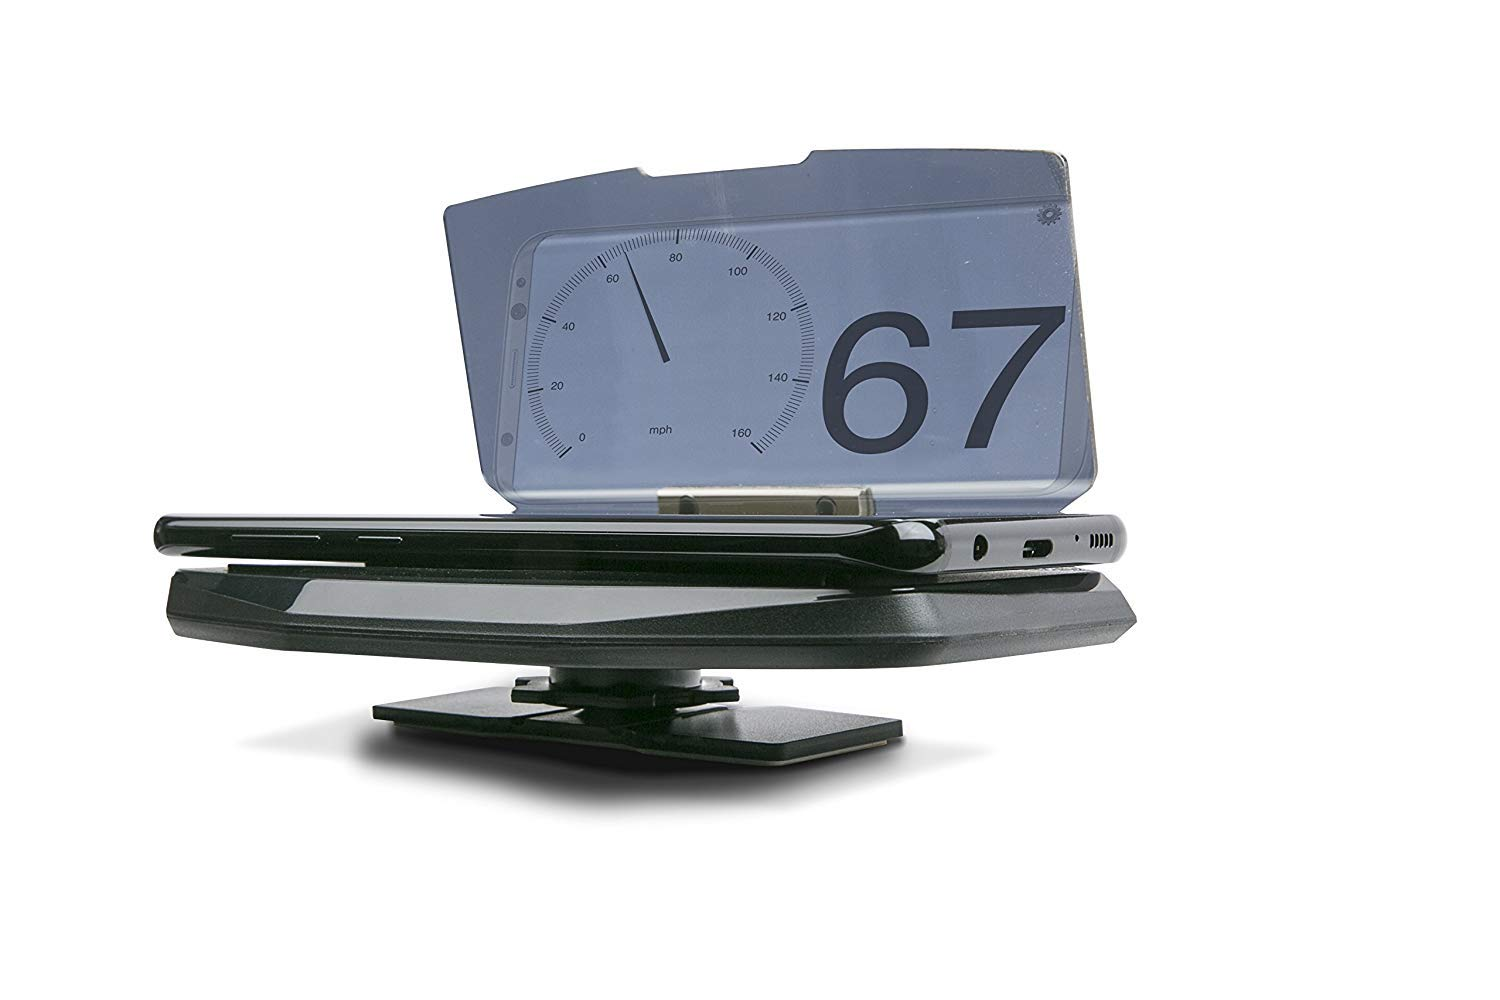 Scosche HUDSPI Heads-up Display Platform for Smartphone Devices Running HUD Applications for use in Any Vehicle